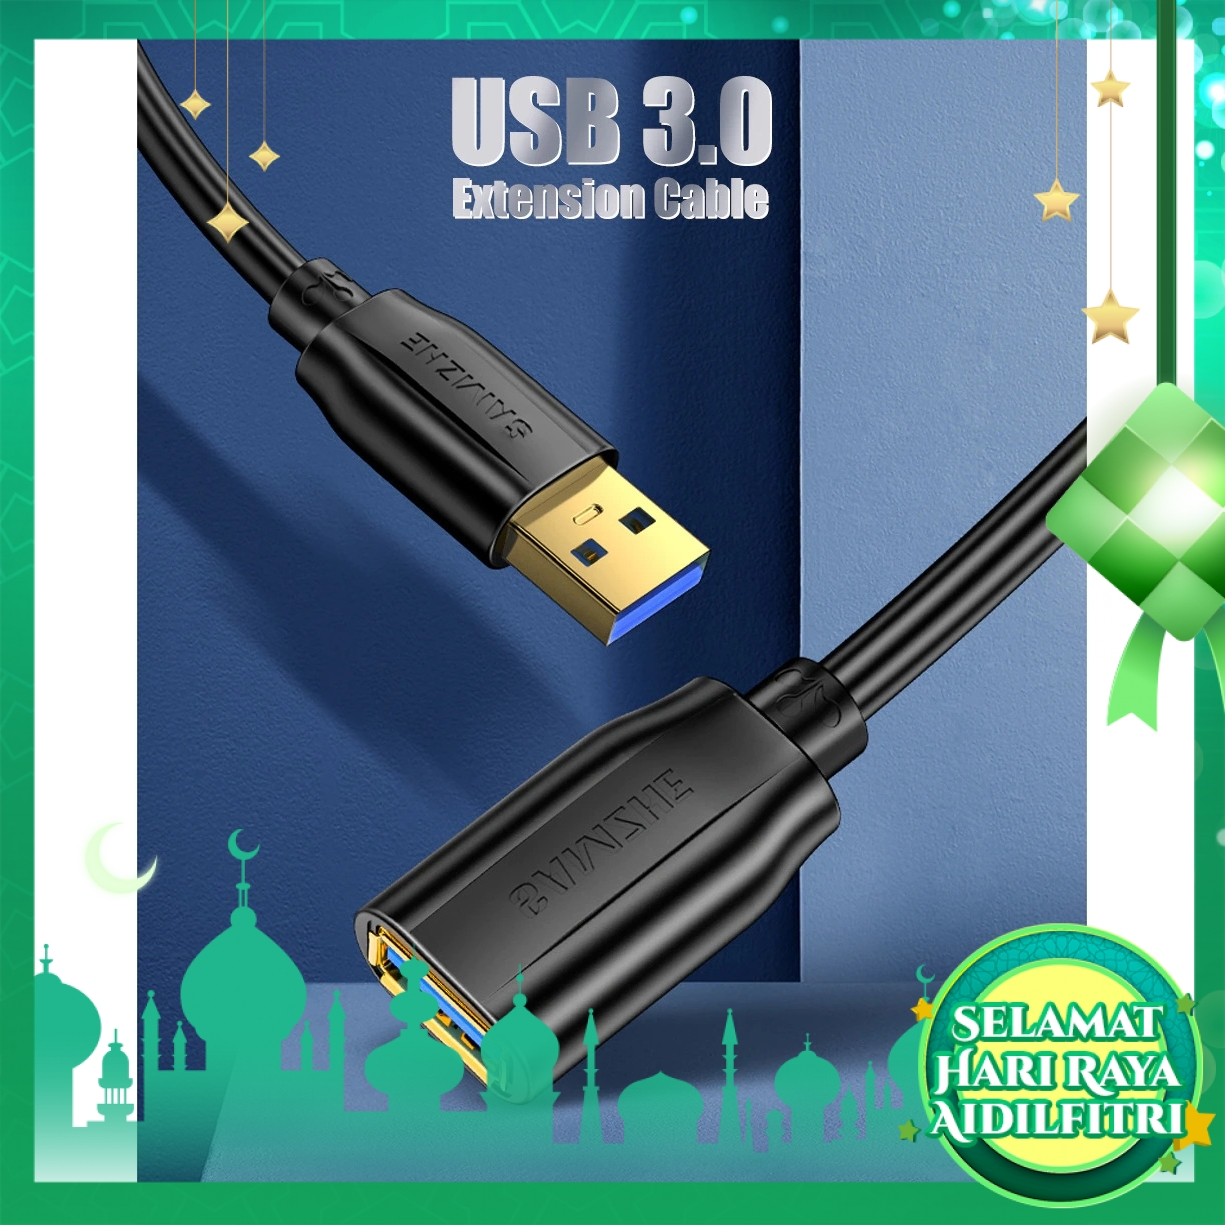 SAMZHE AP-306 USB 3.0 Extension Cable Male to Female USB3.0 High-Speed Data Transmission Cable For PC TV Laptop 0.6M